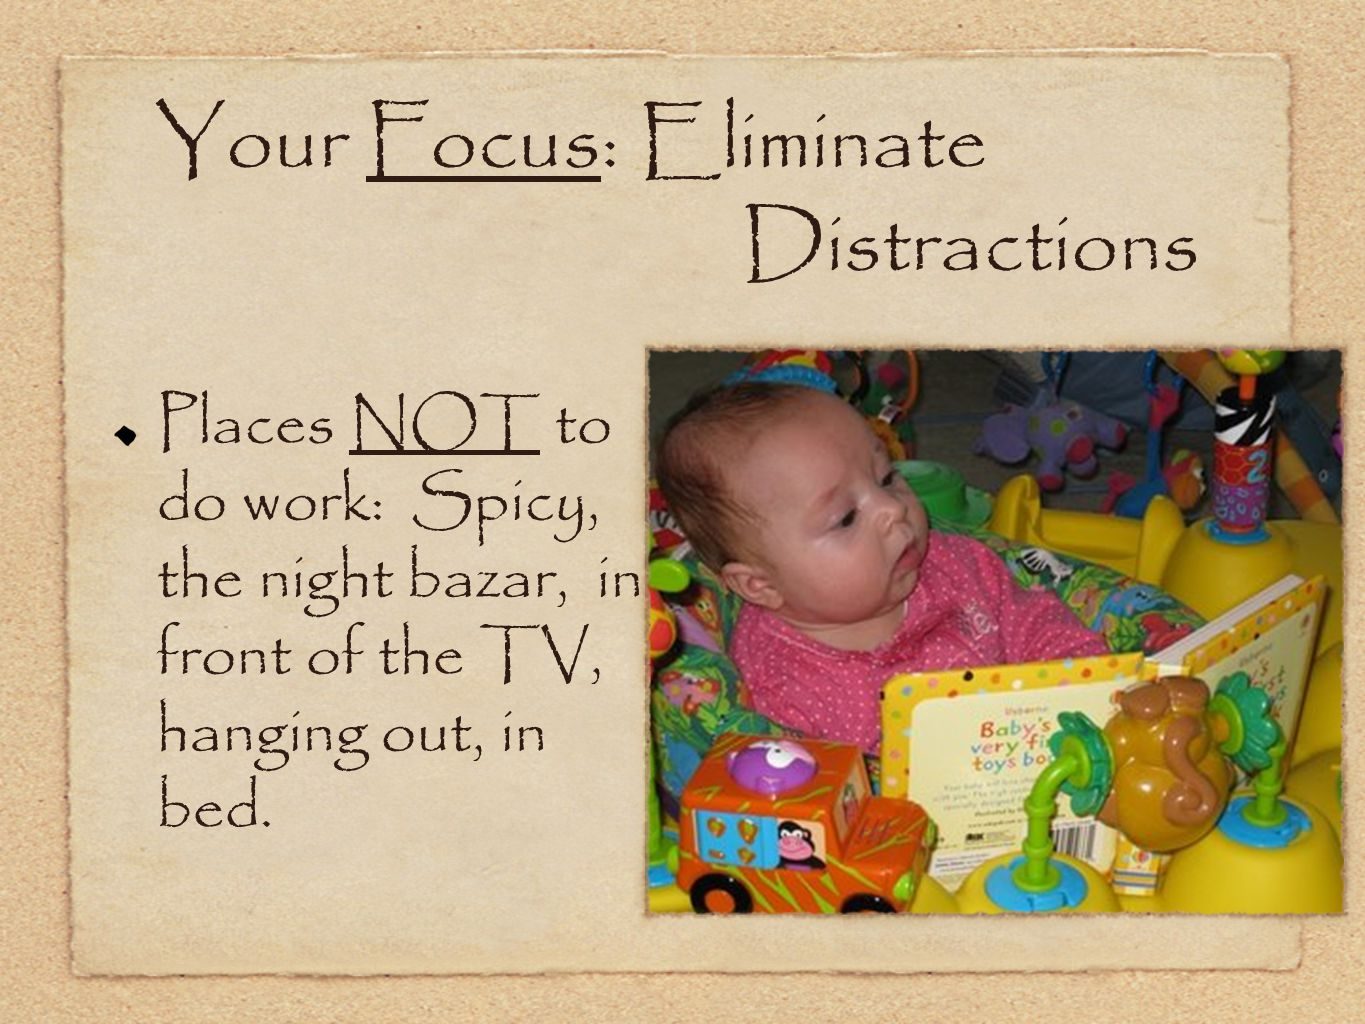 Your Focus: Eliminate Distractions Places NOT to do work: Spicy, the night bazar, in front of the TV, hanging out, in bed.